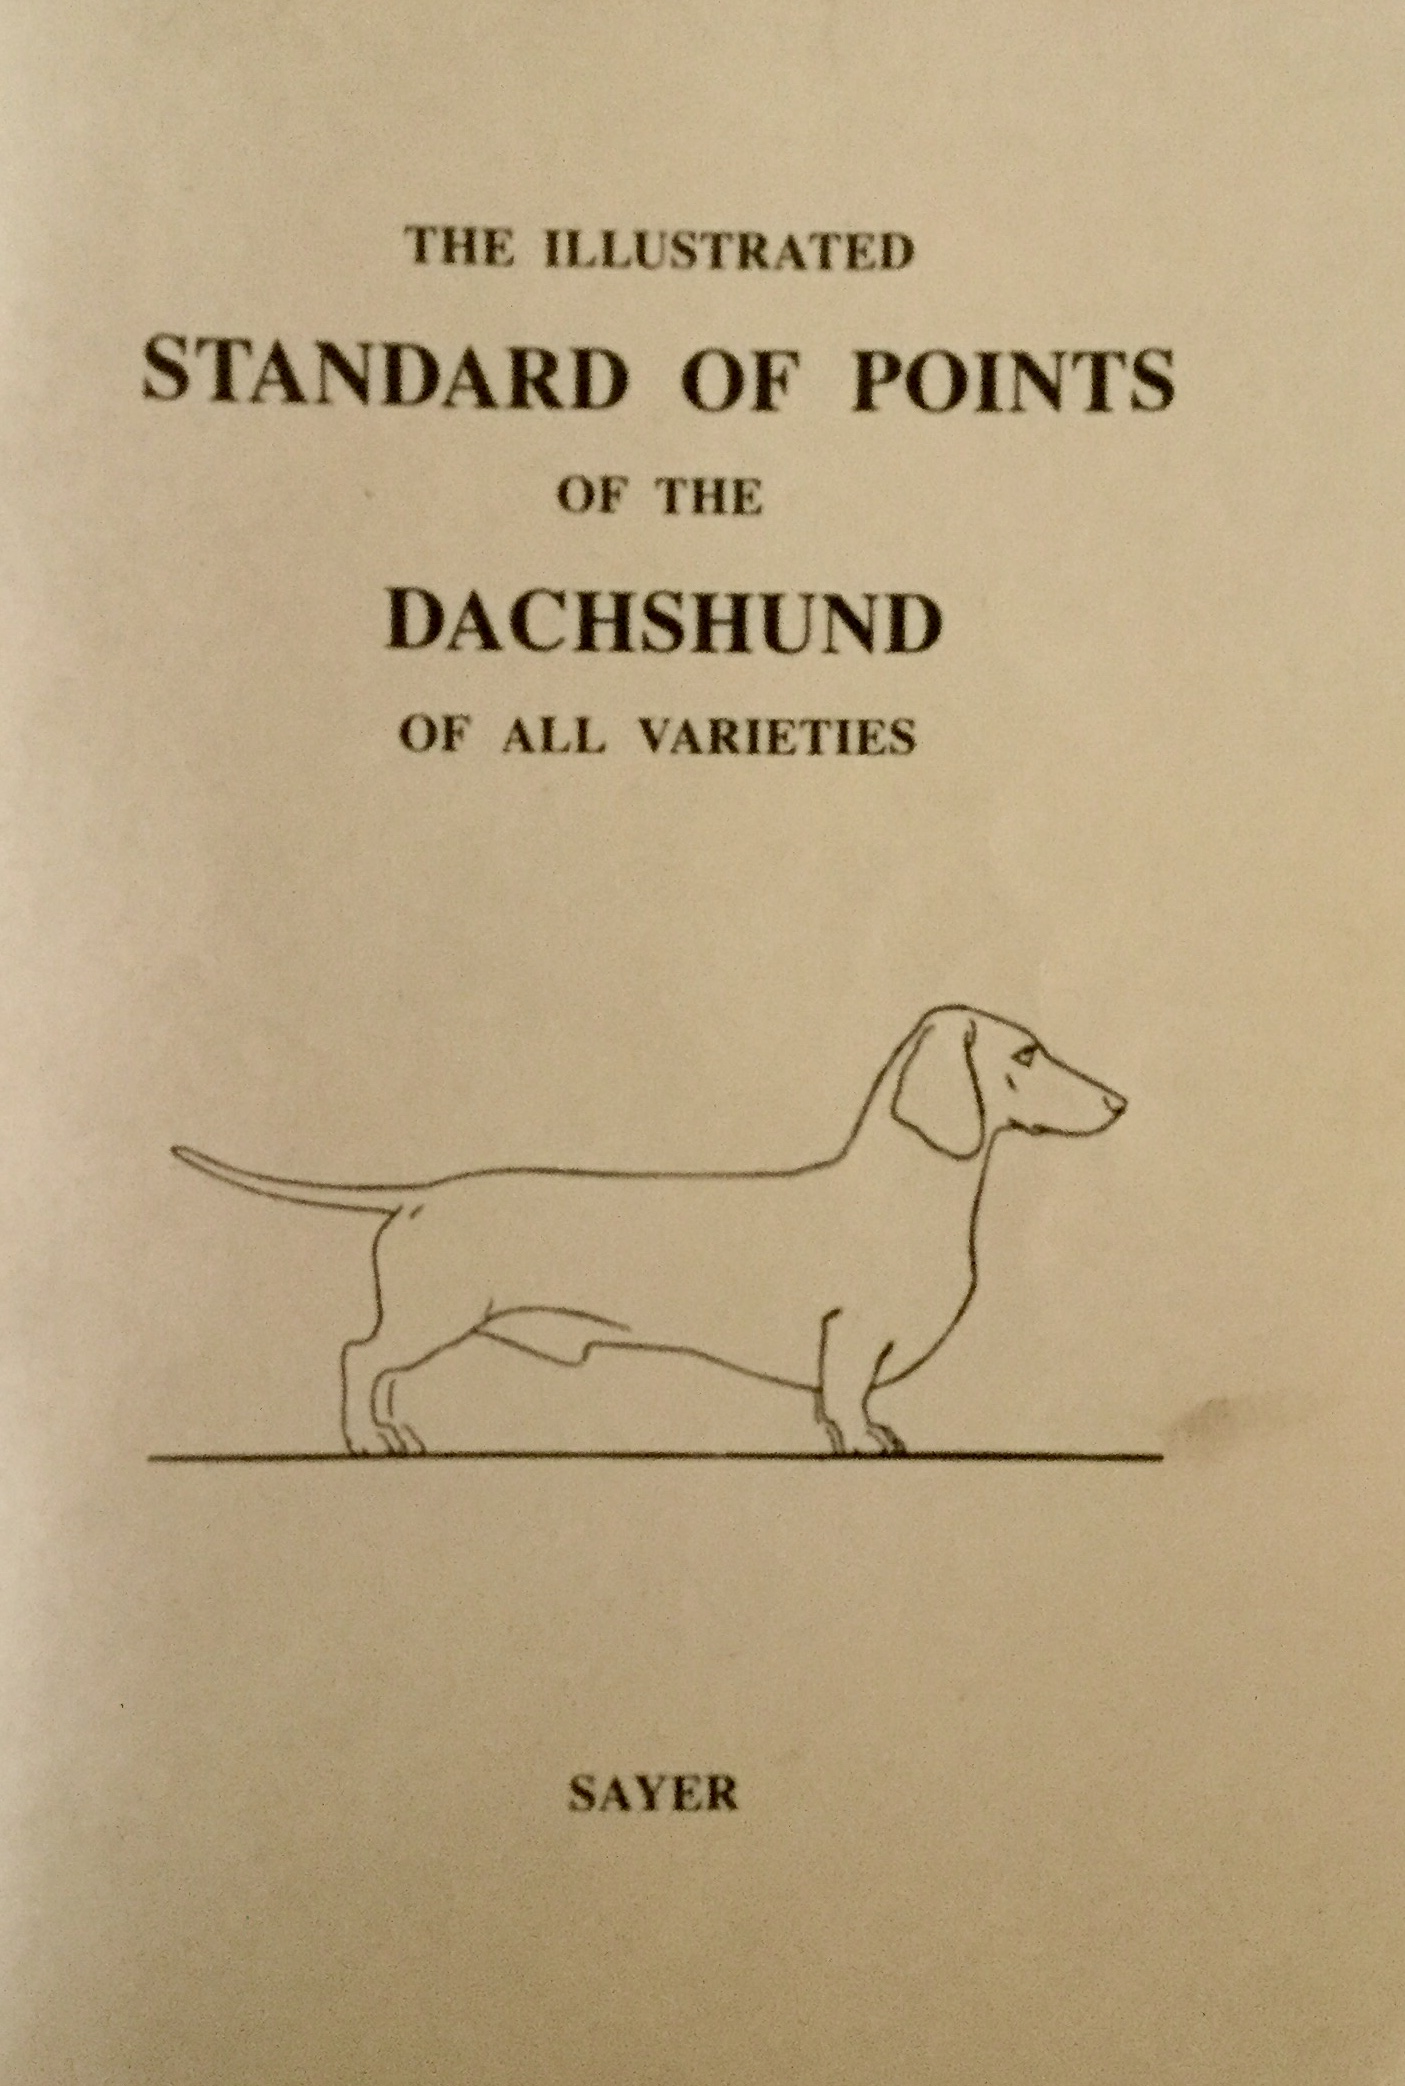 Conformation The Dachshund Fit For Function